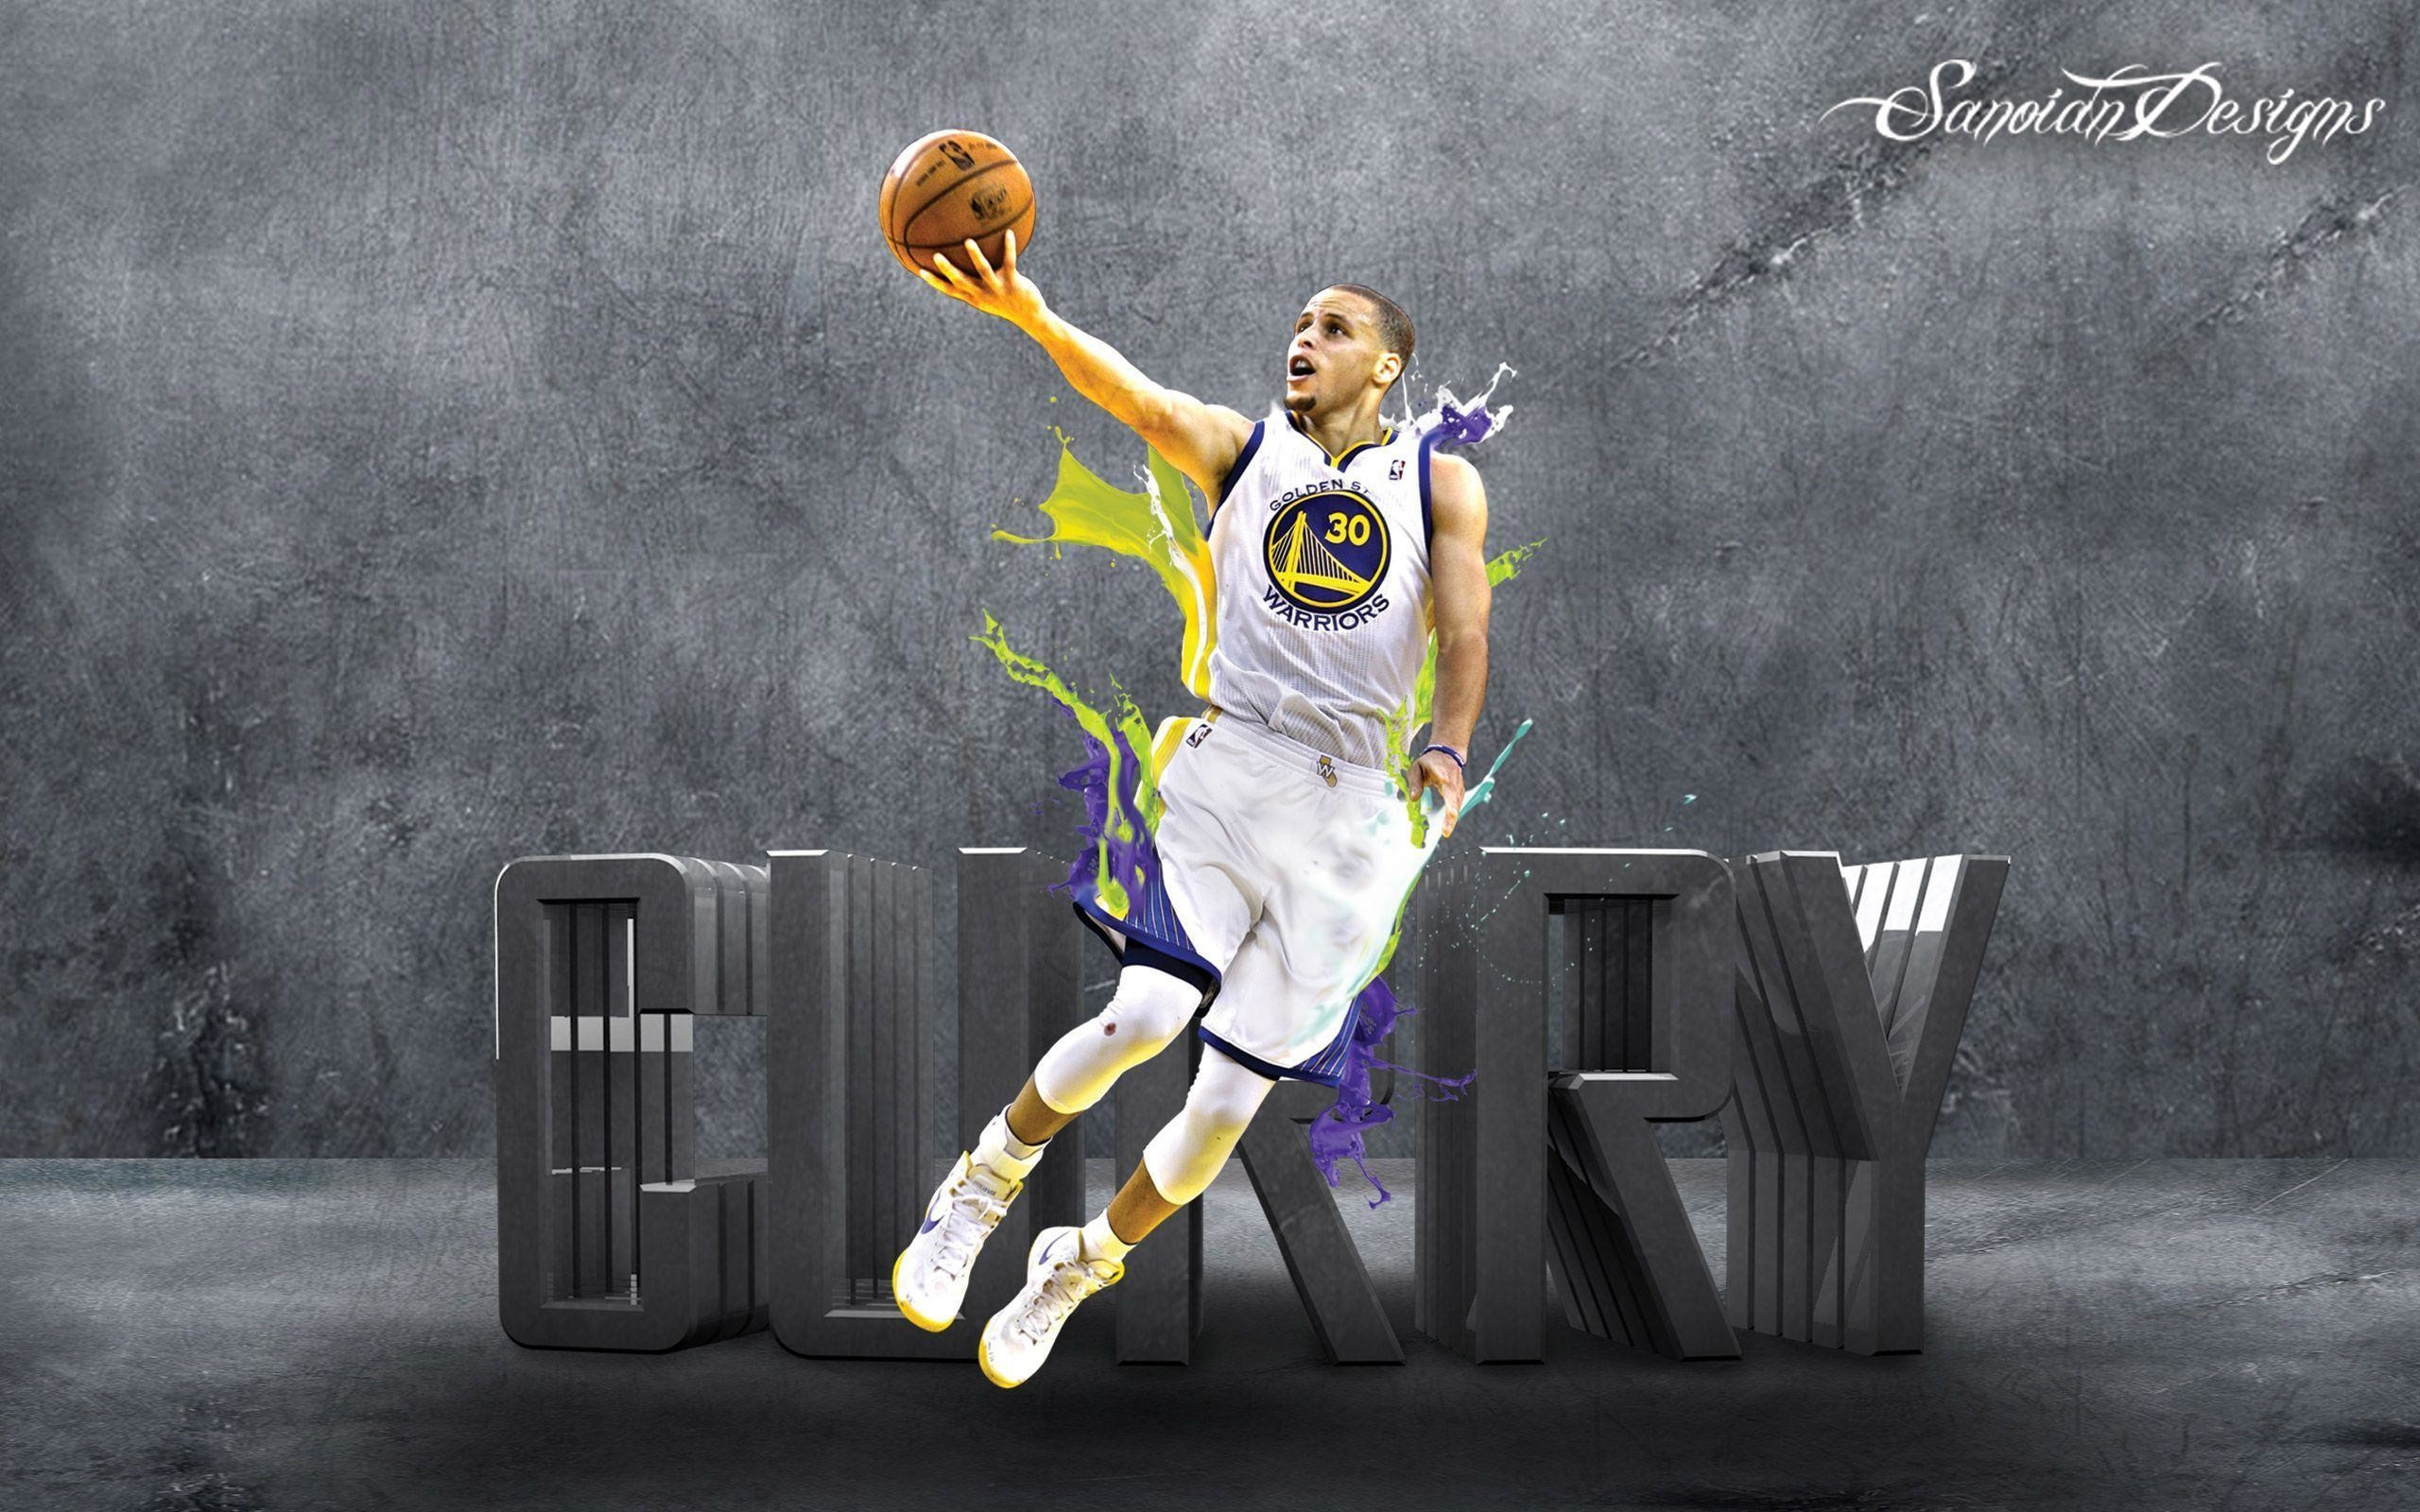 2560x1600 Stephen Curry Golden State Warriors NBA wallpaper HD 2016 in .